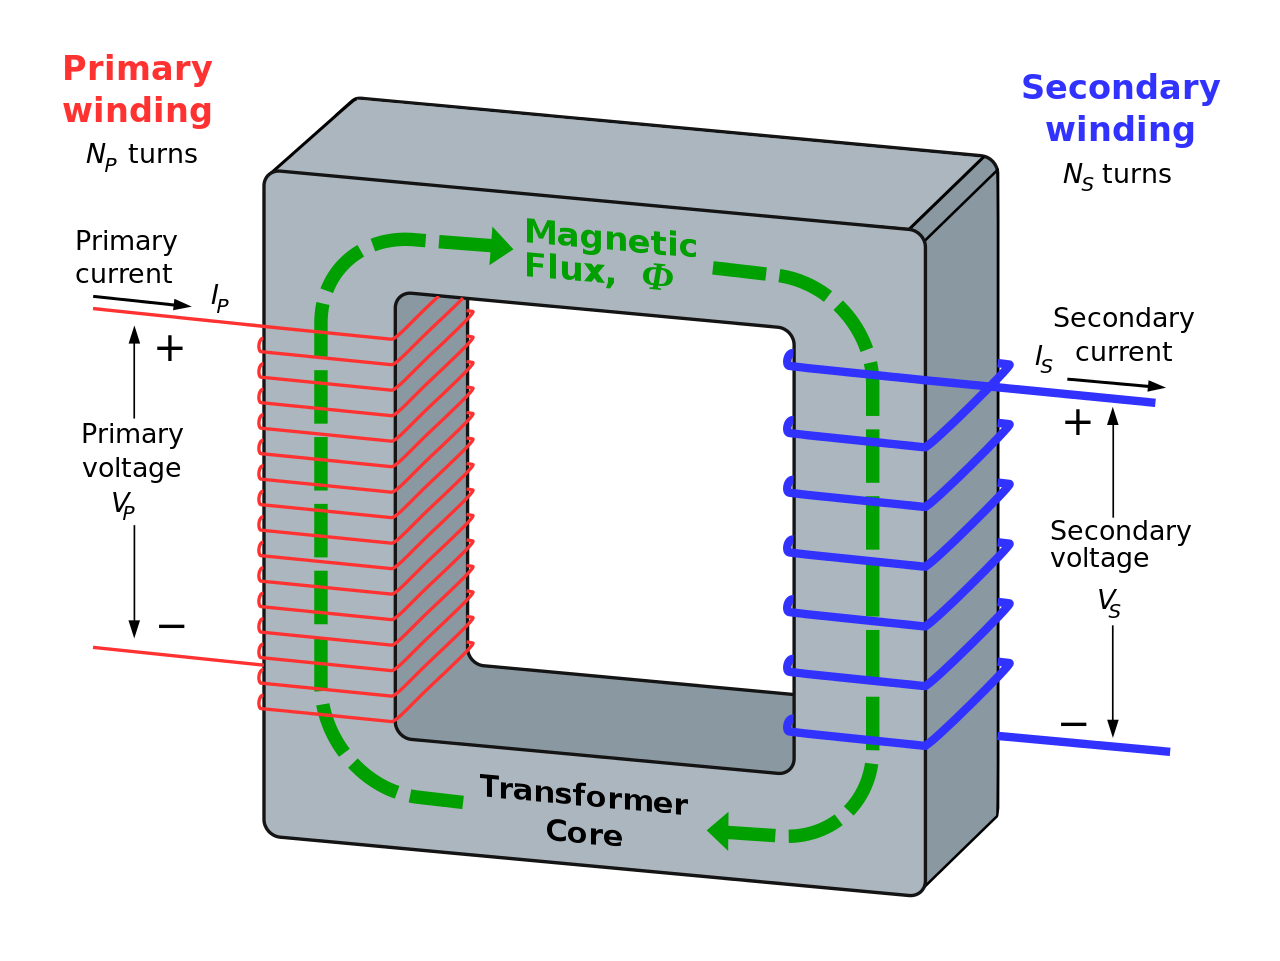 C:\Users\sys\Desktop\electric diagrams\Transformer.png